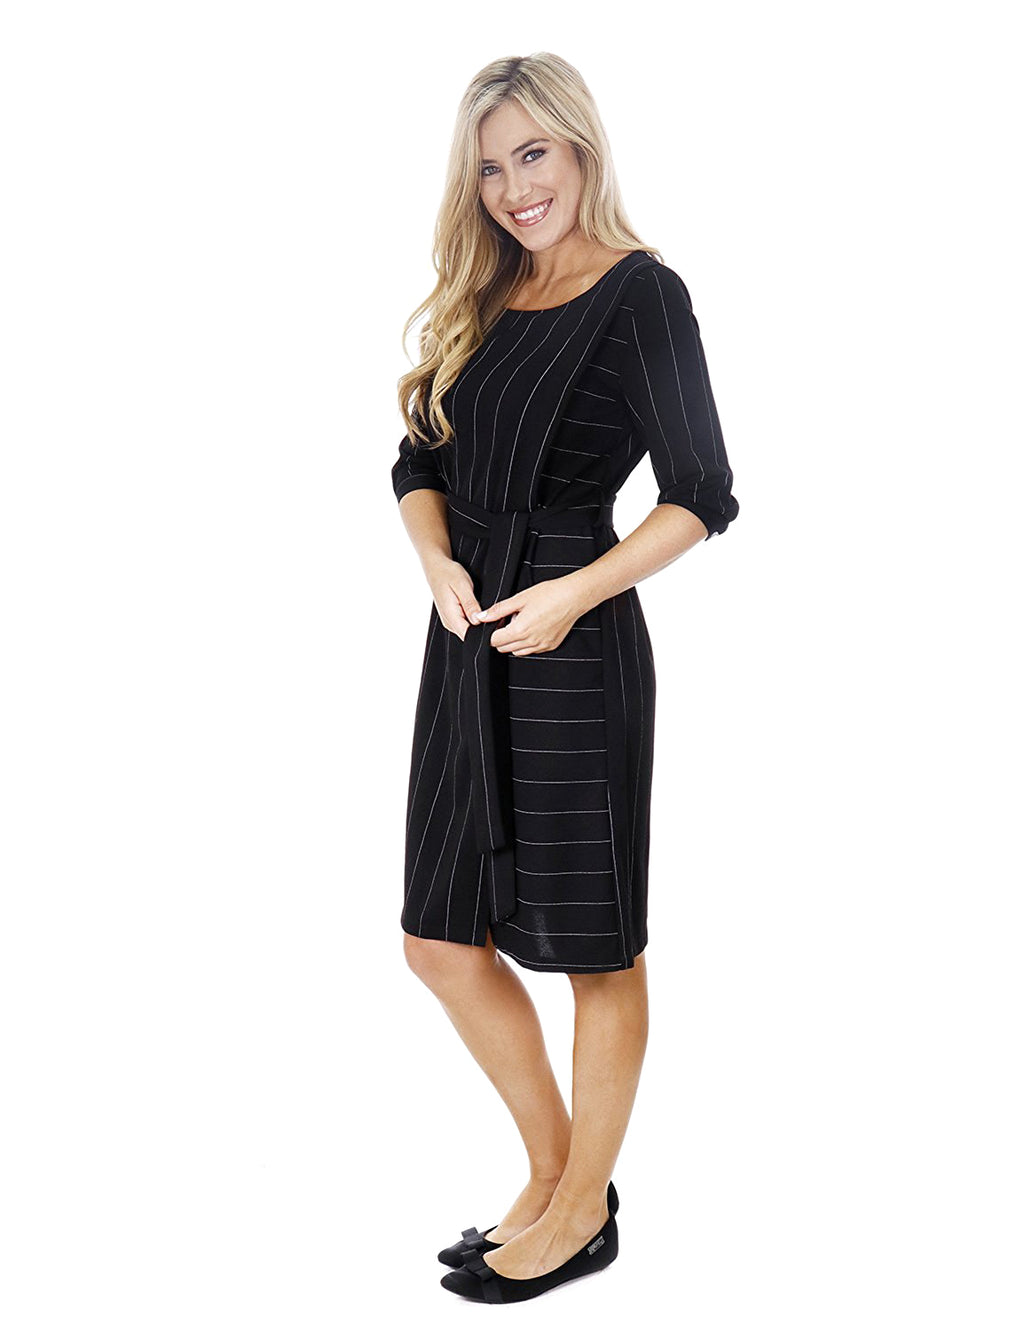 Pinstripe 3/4 Length Sleeve Classic Wrap Dress with Belt